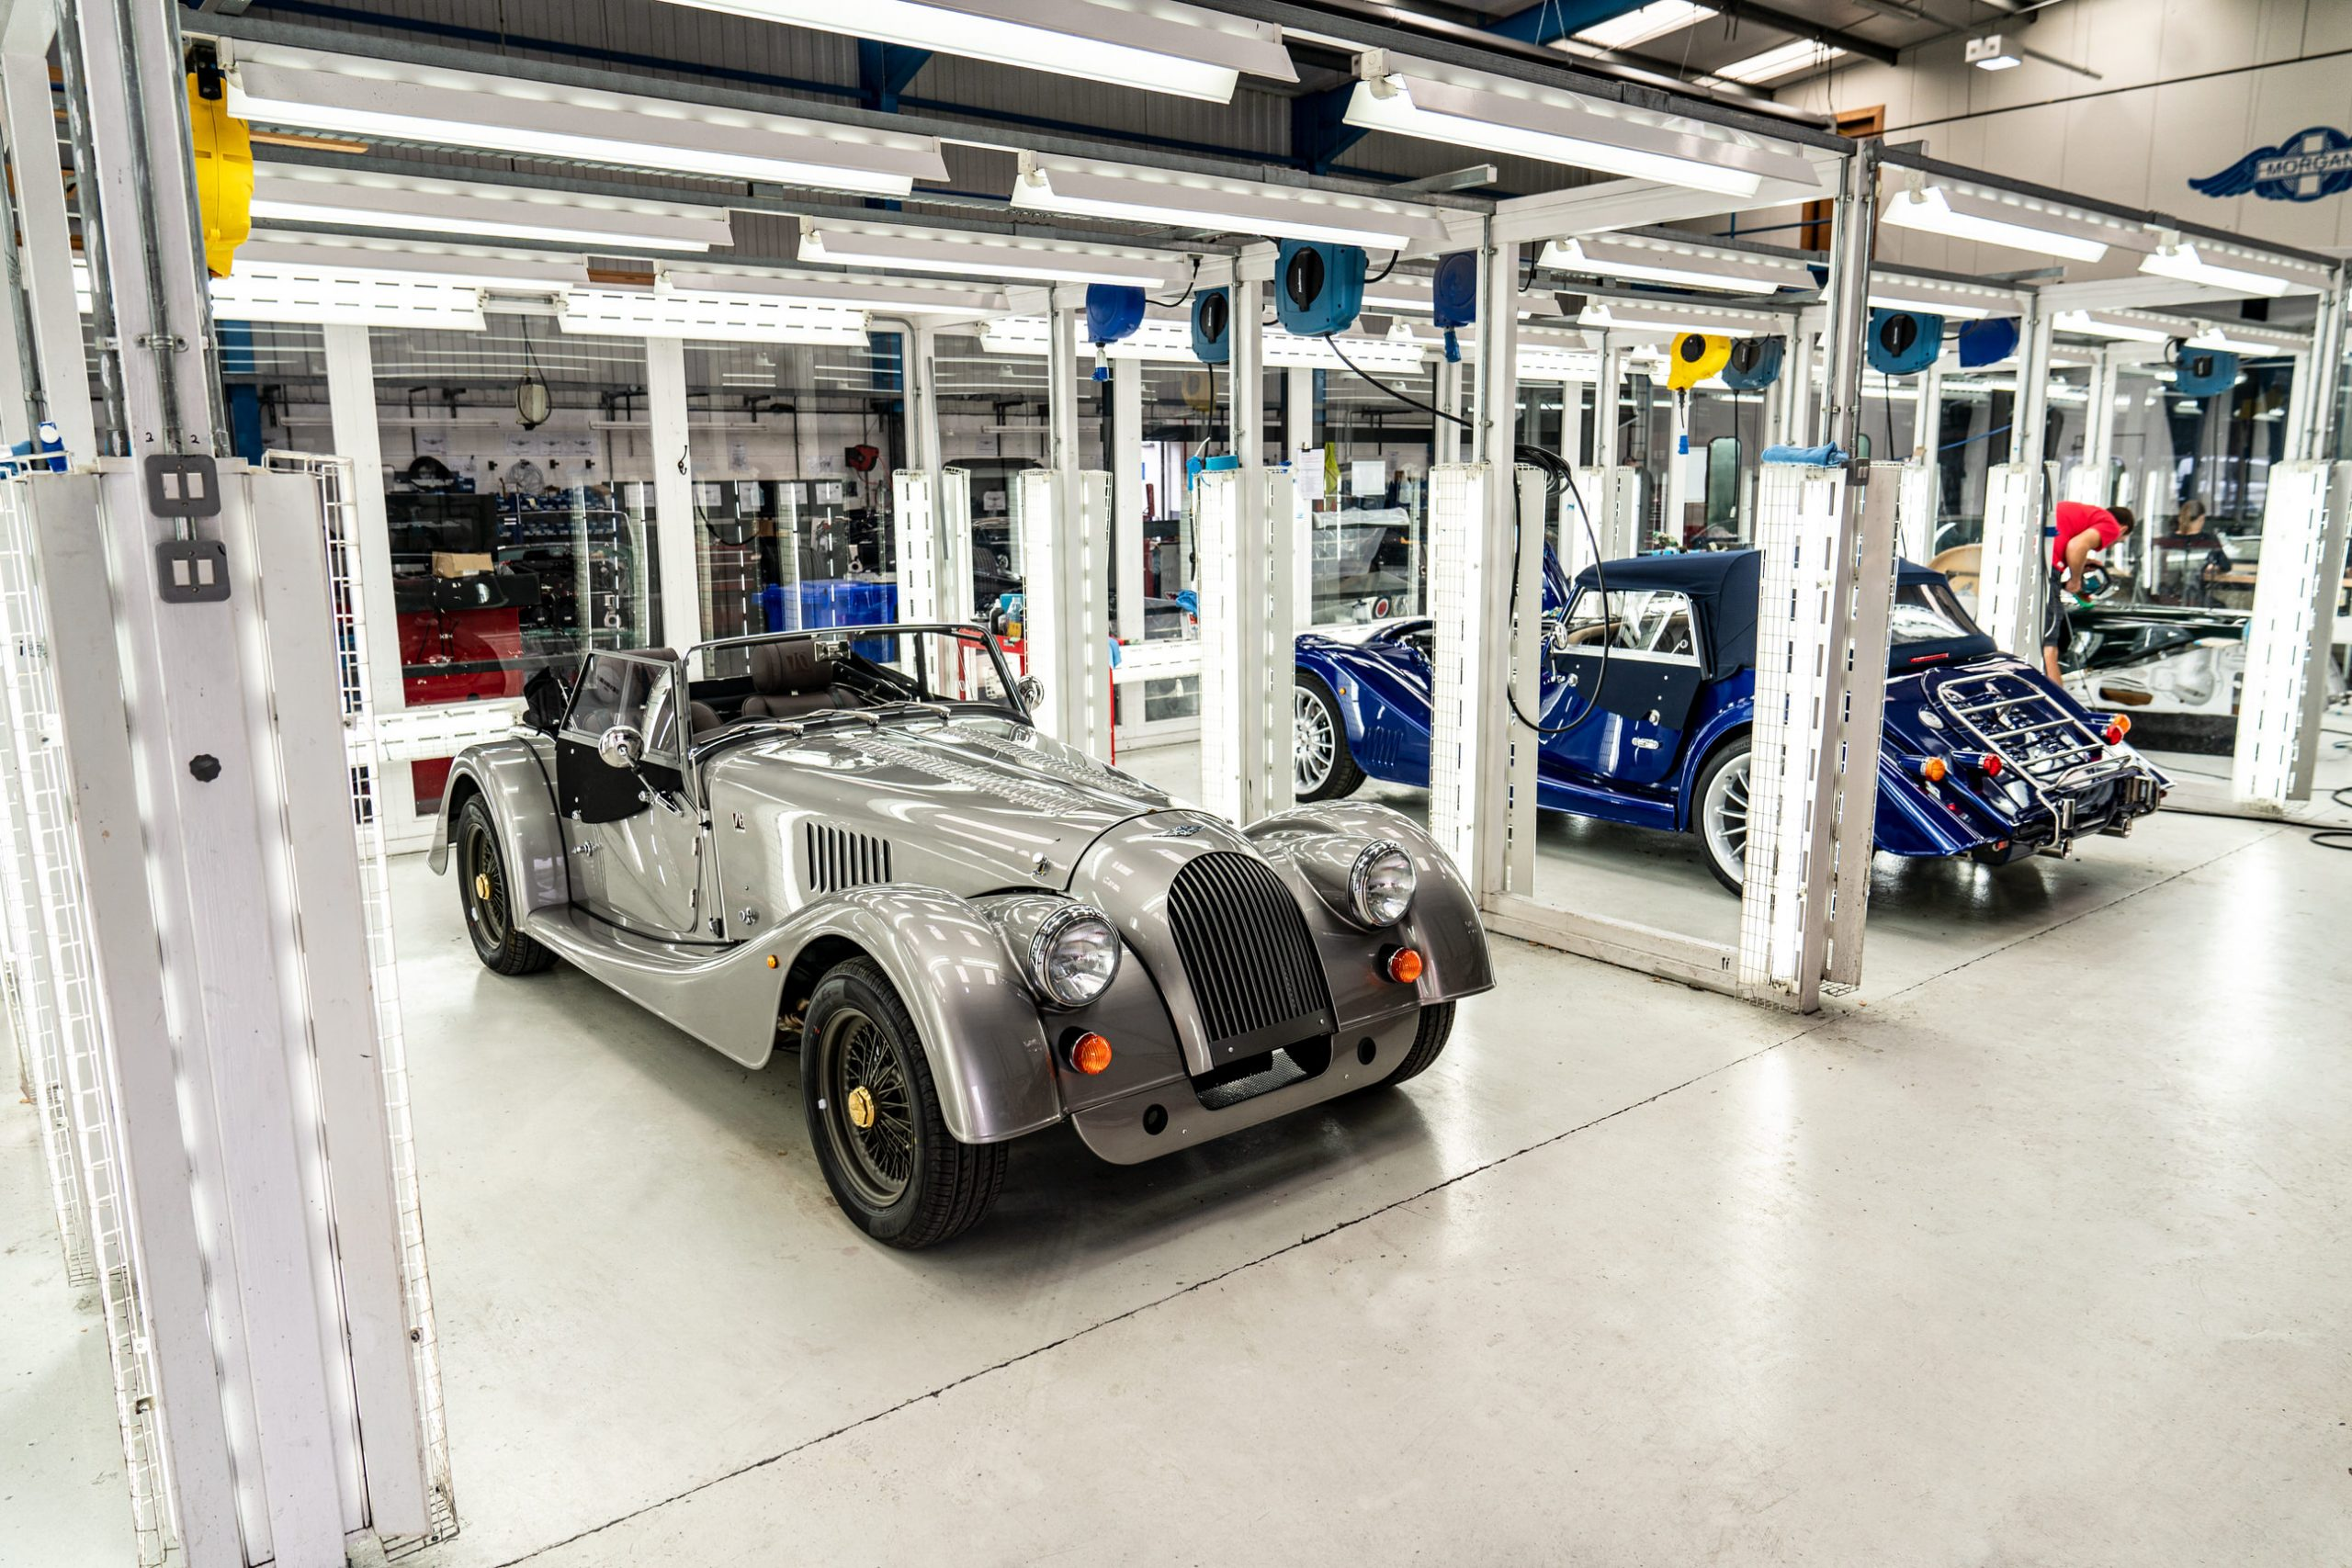 End of the line for classic steel chassis Morgans